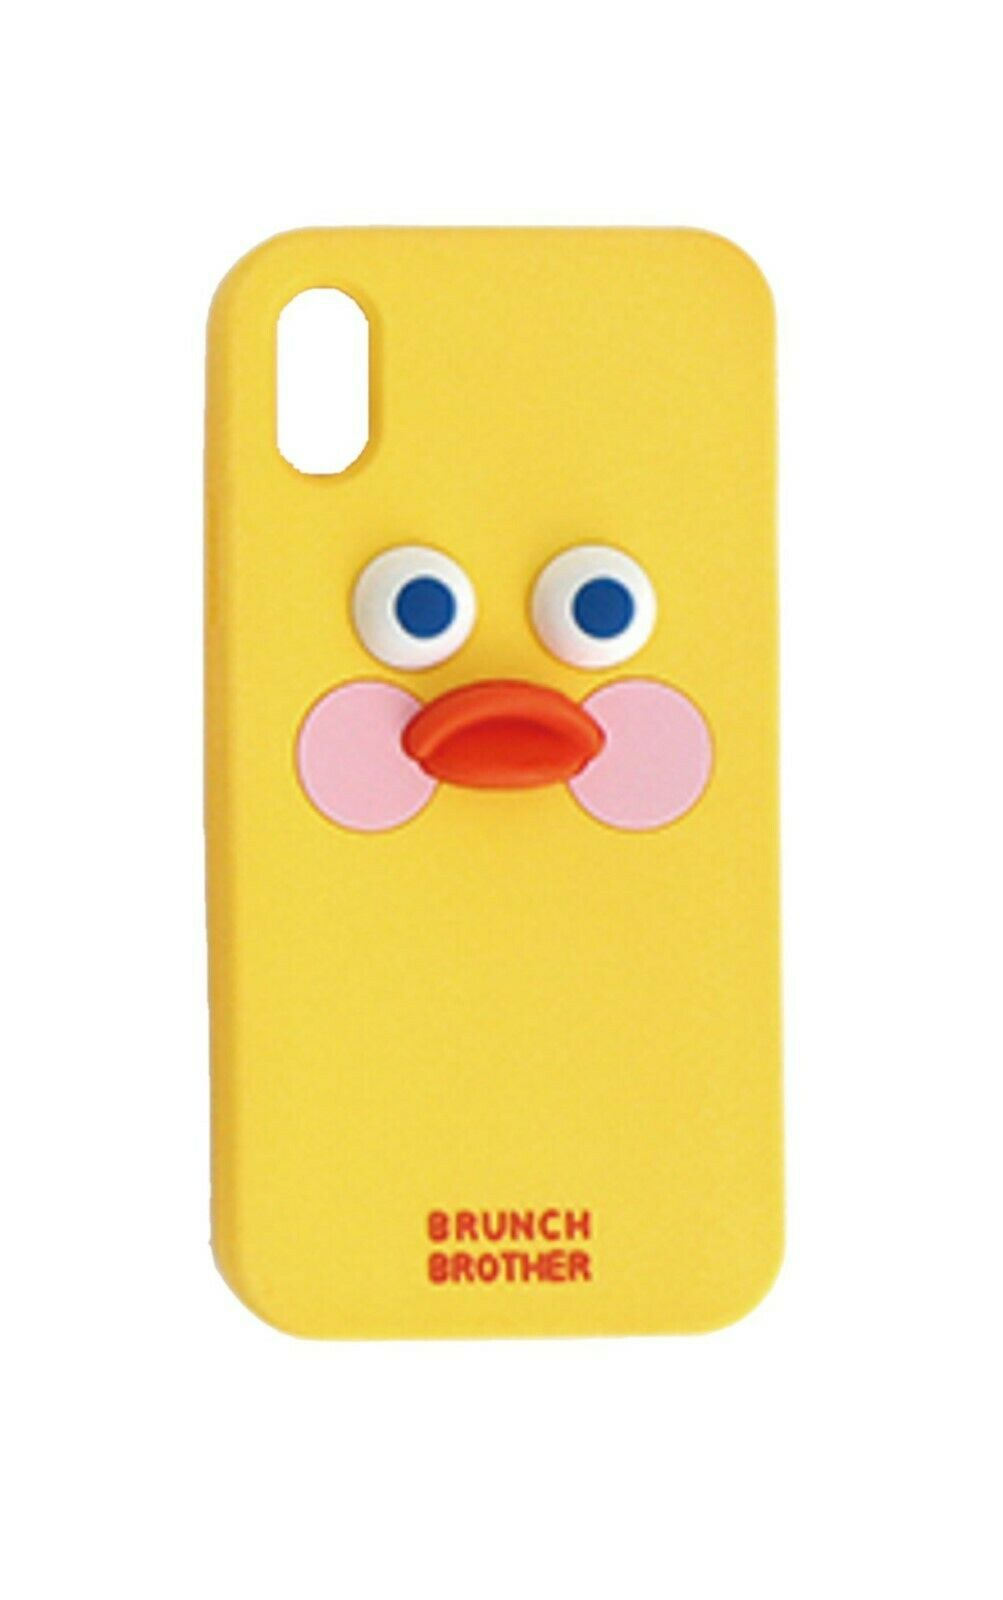 Brunch Brother iPhone X Silicon Case Cover Protector Version 2 (Yellow Duck)